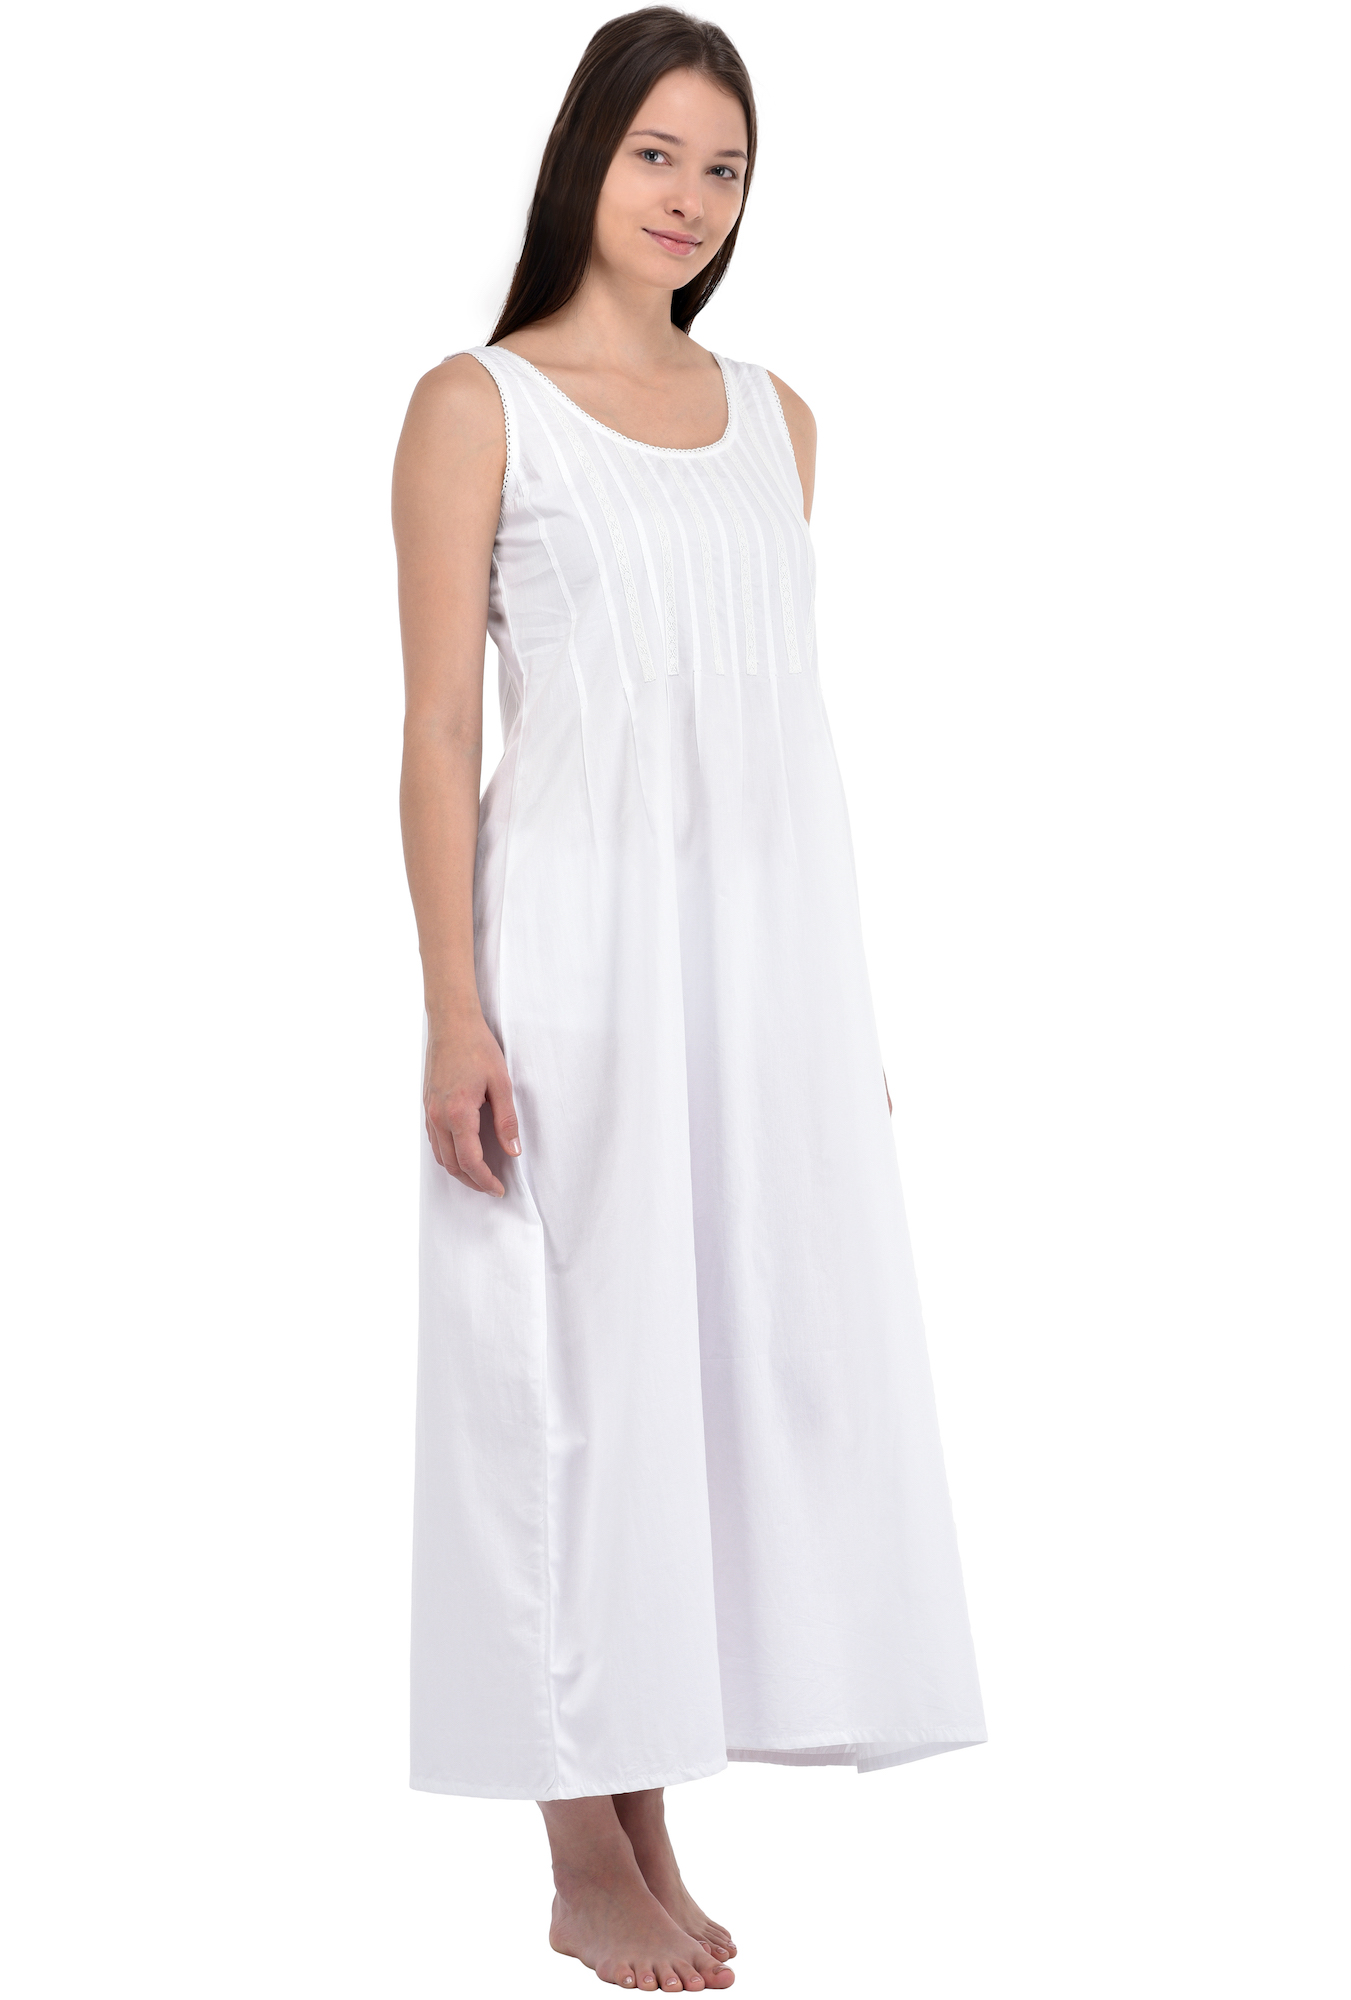 Cotton Lane White Cotton Vintage Reproduction Dress D39WT  ba78304ba